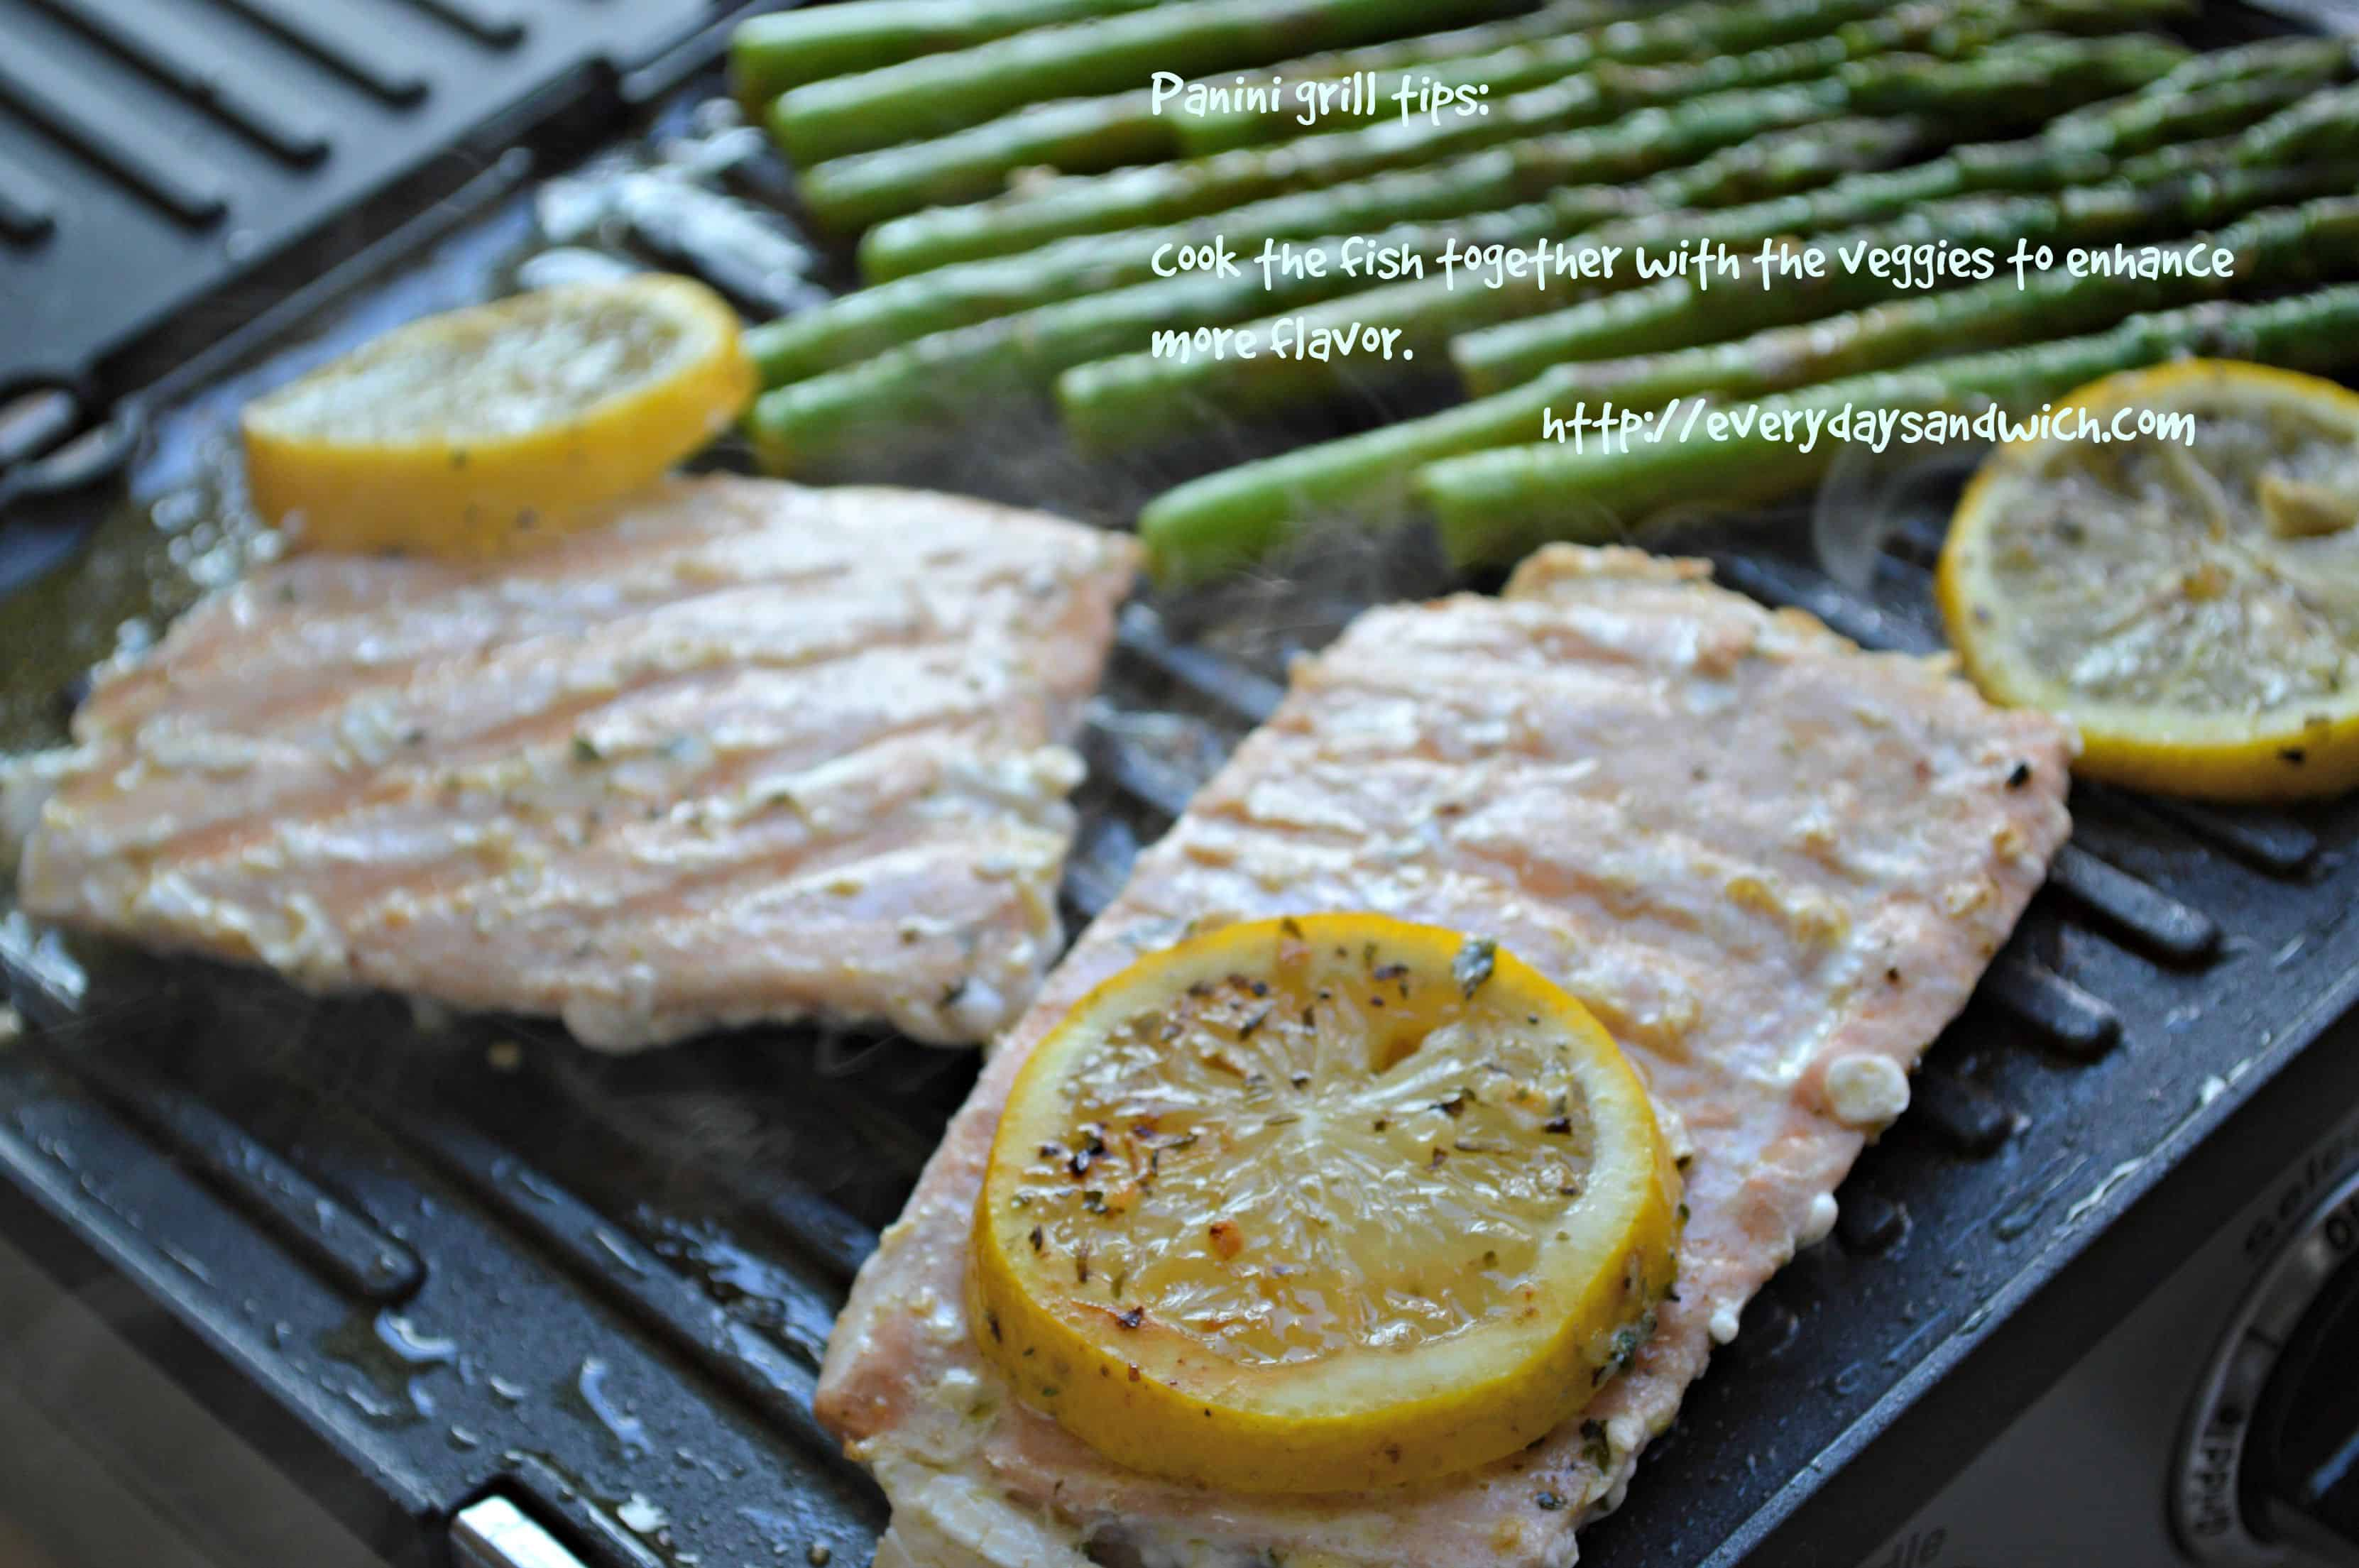 Panini grilled salmon and asparagus